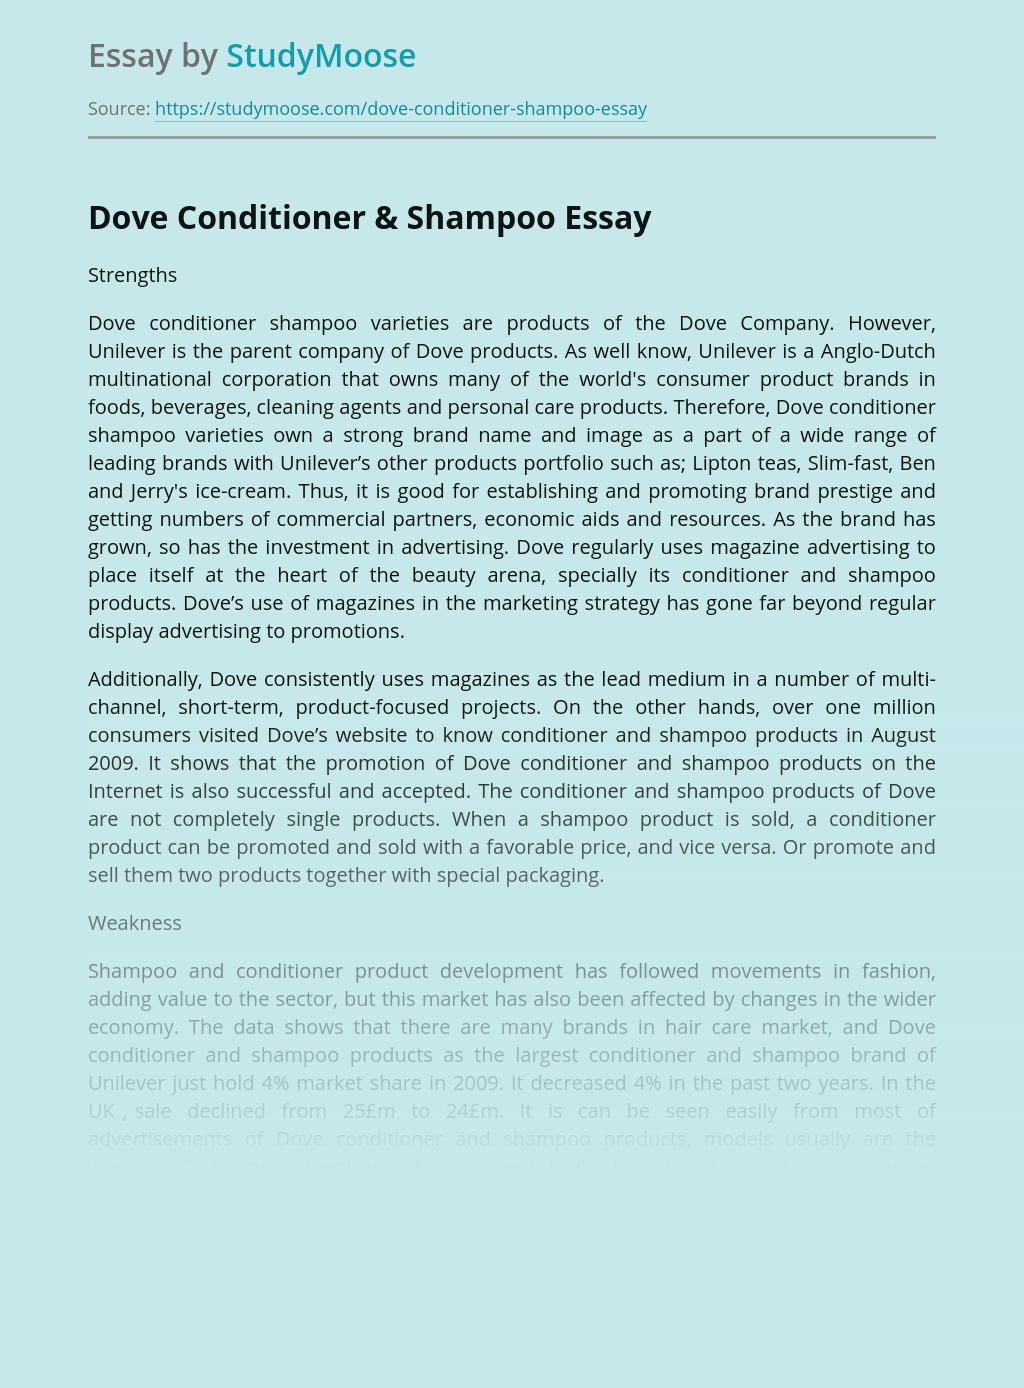 Dove Conditioner & Shampoo